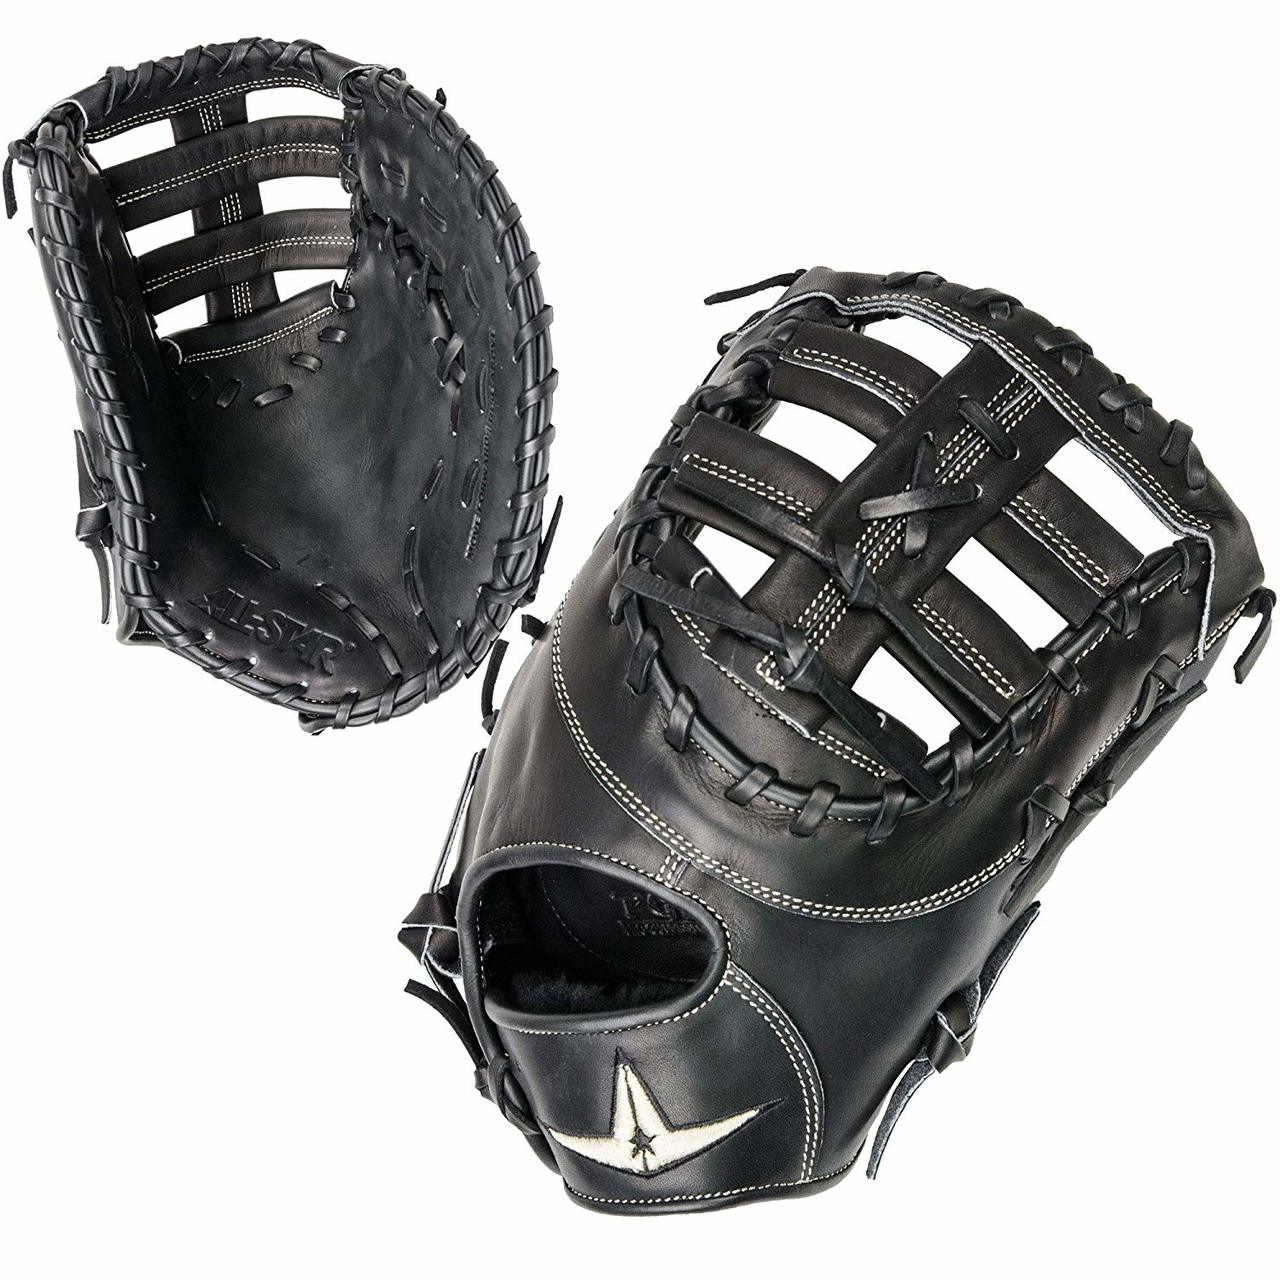 The All-Star Pro Elite glove is a natural addition to baseball's preferred line. Pro Elite fielding gloves provide premium level materials, patterns, and feel for all positions. Exclusive Japanese tanned steer hide delivers a fast, custom break in with professional level durability and performance. The world-class, Pittards leather palm lining delivers a buttery soft feel making the glove feel like a extension of the hand. - 13 Inch First Base Model - Single Post Web - Conventional Open Back - Japanese Black Leather - Pittards leather palm lining - Long Lasting Durability.